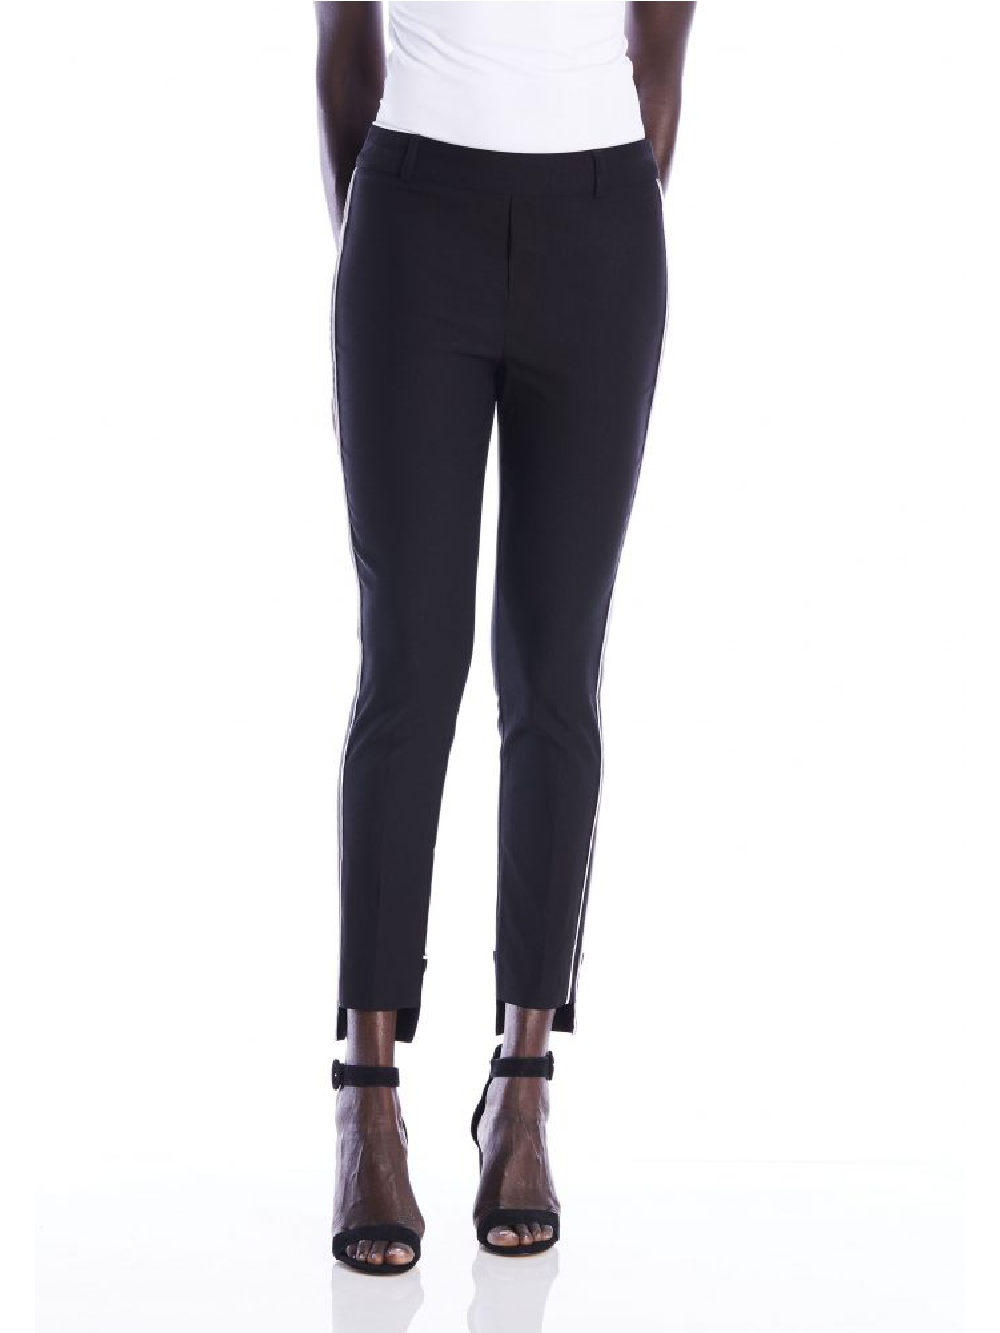 The Brooklyn Pant - Black With White Piping